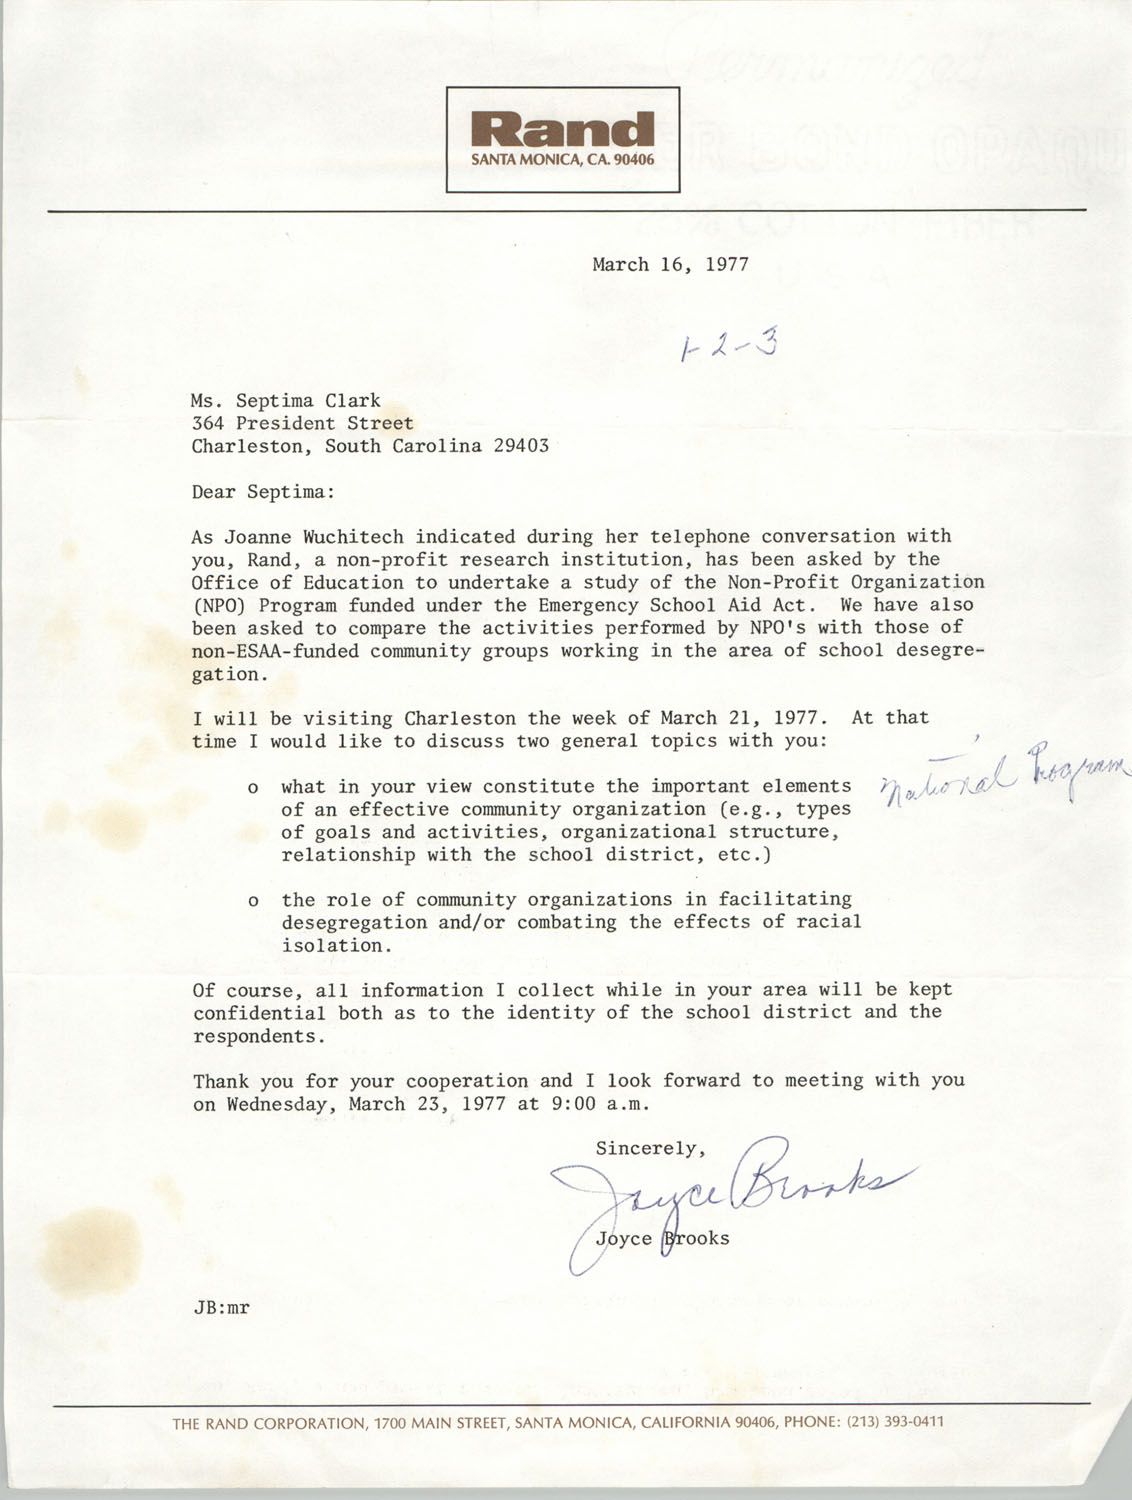 Letter from Joyce Brooks to Septima Clark, March 16, 1977